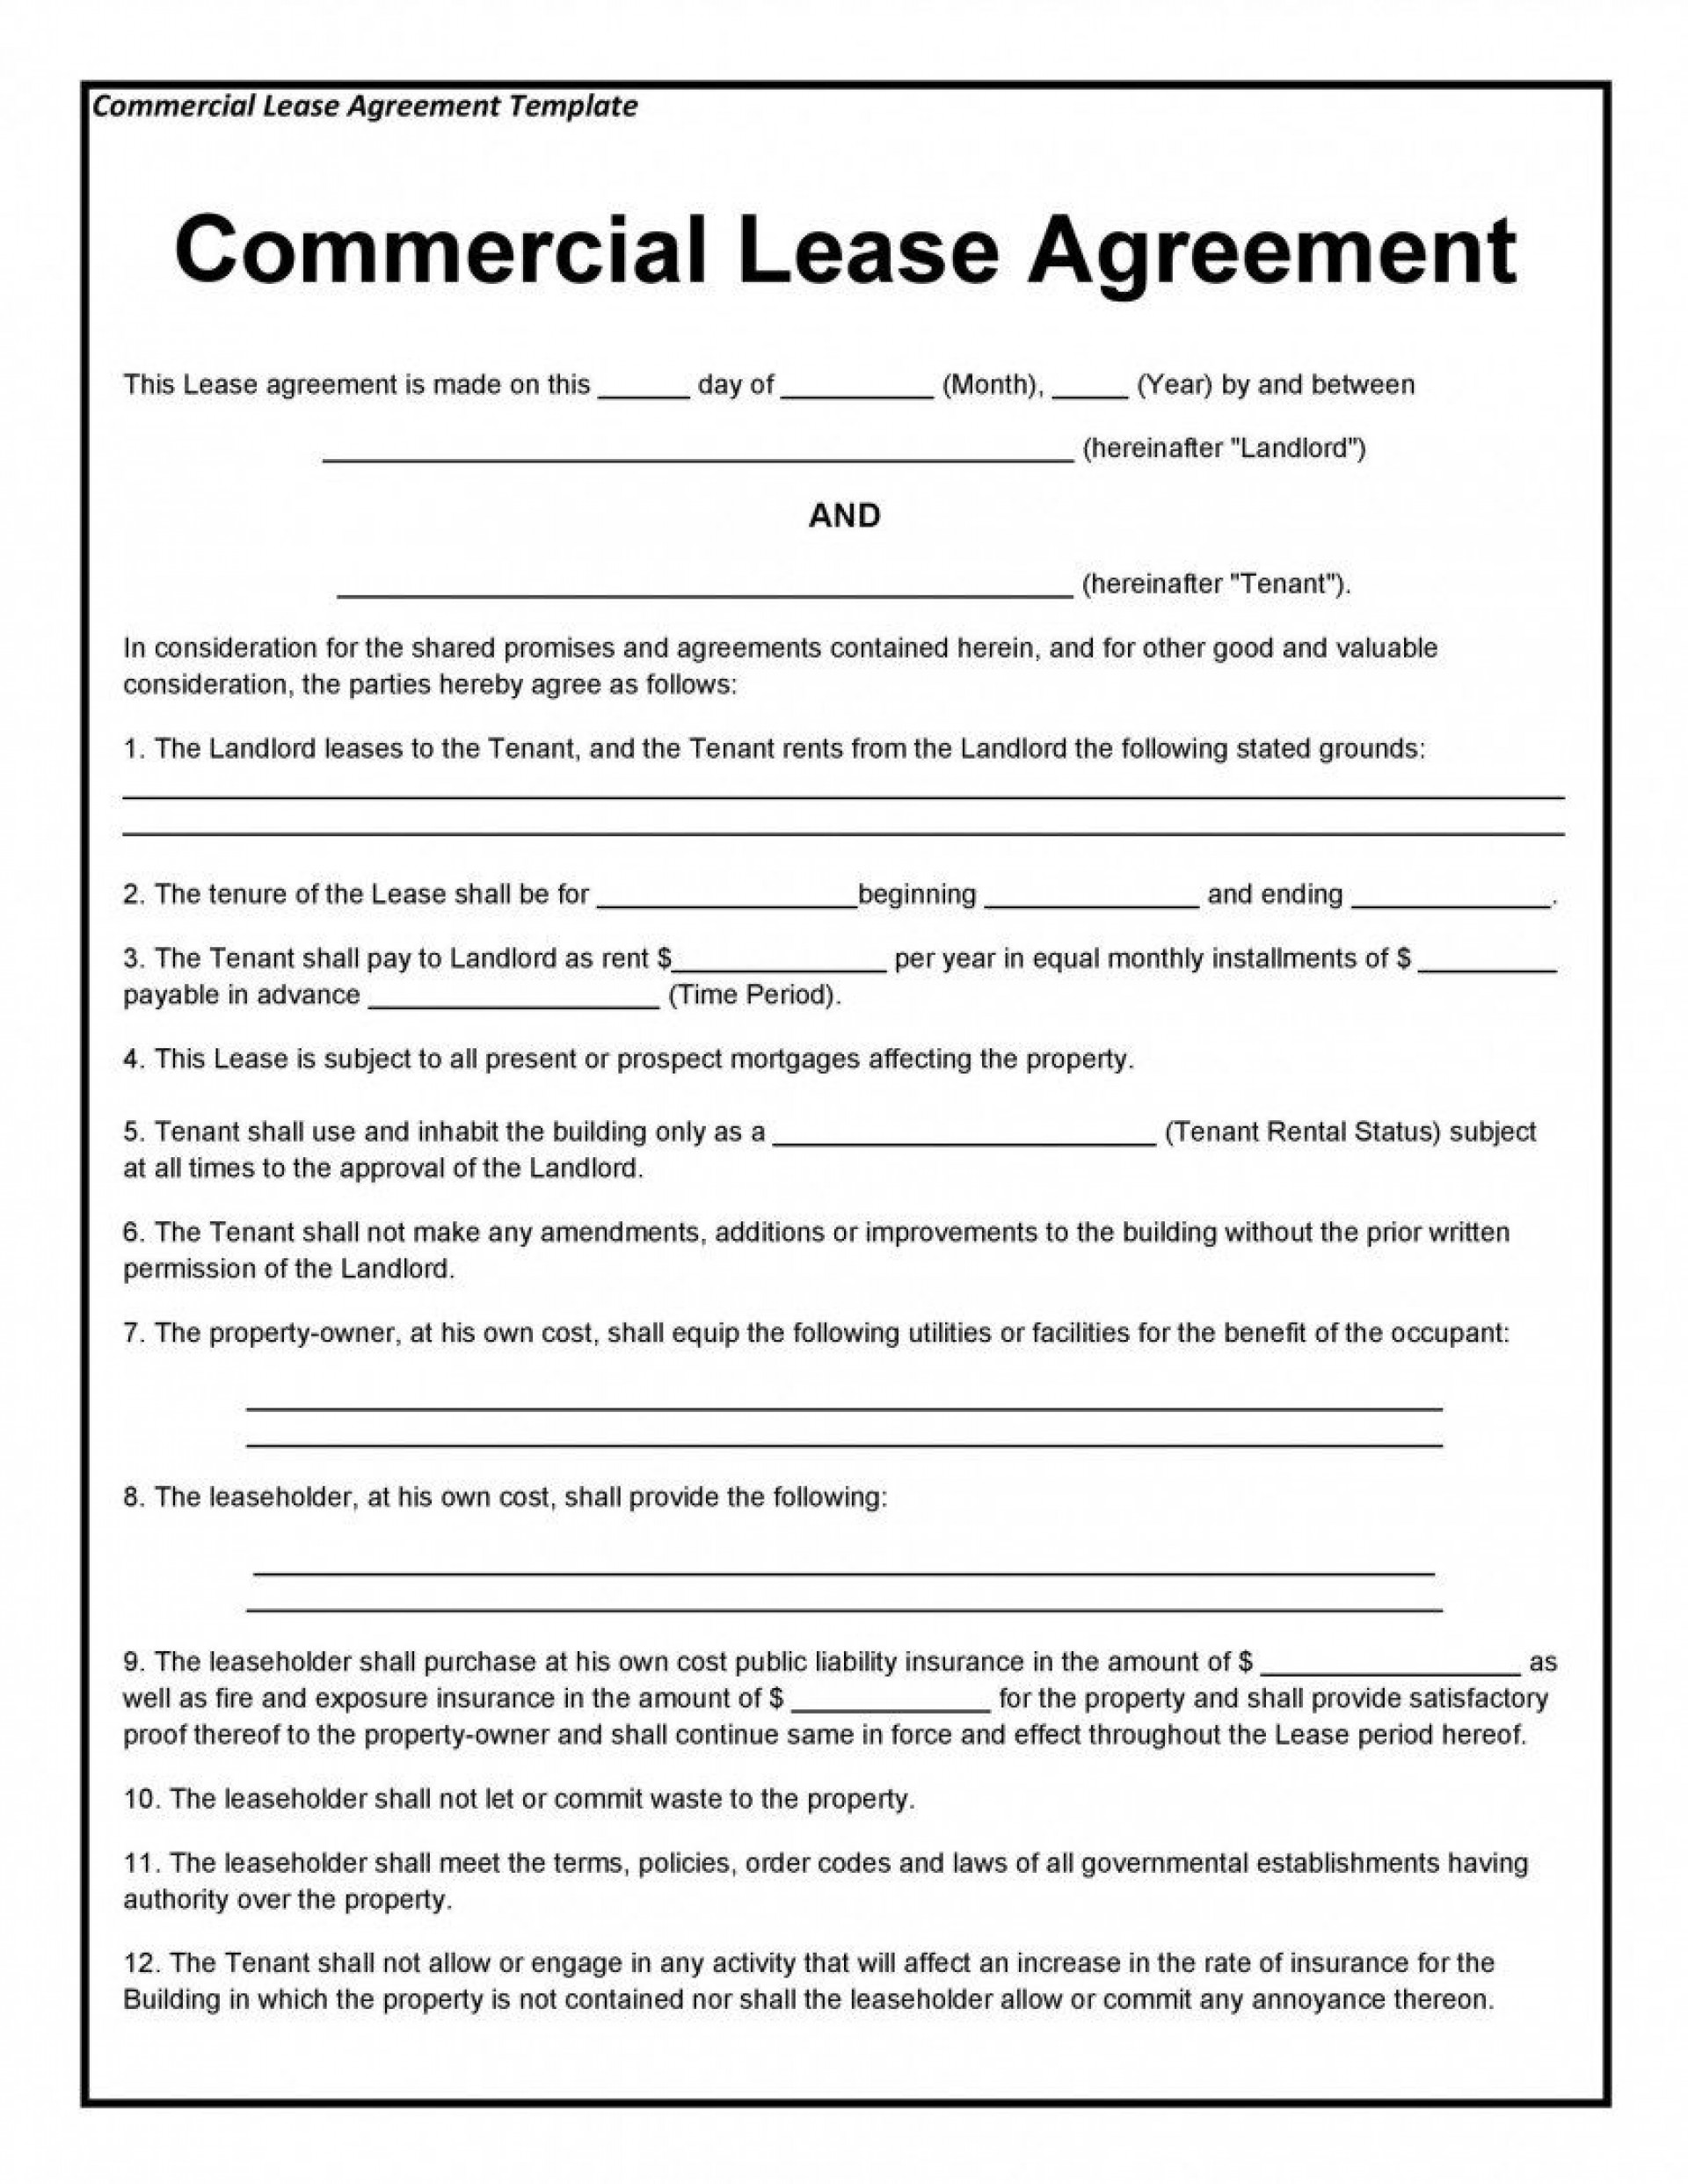 003 Top Rental Agreement Template Word South Africa Sample  Room Doc Application Form1920